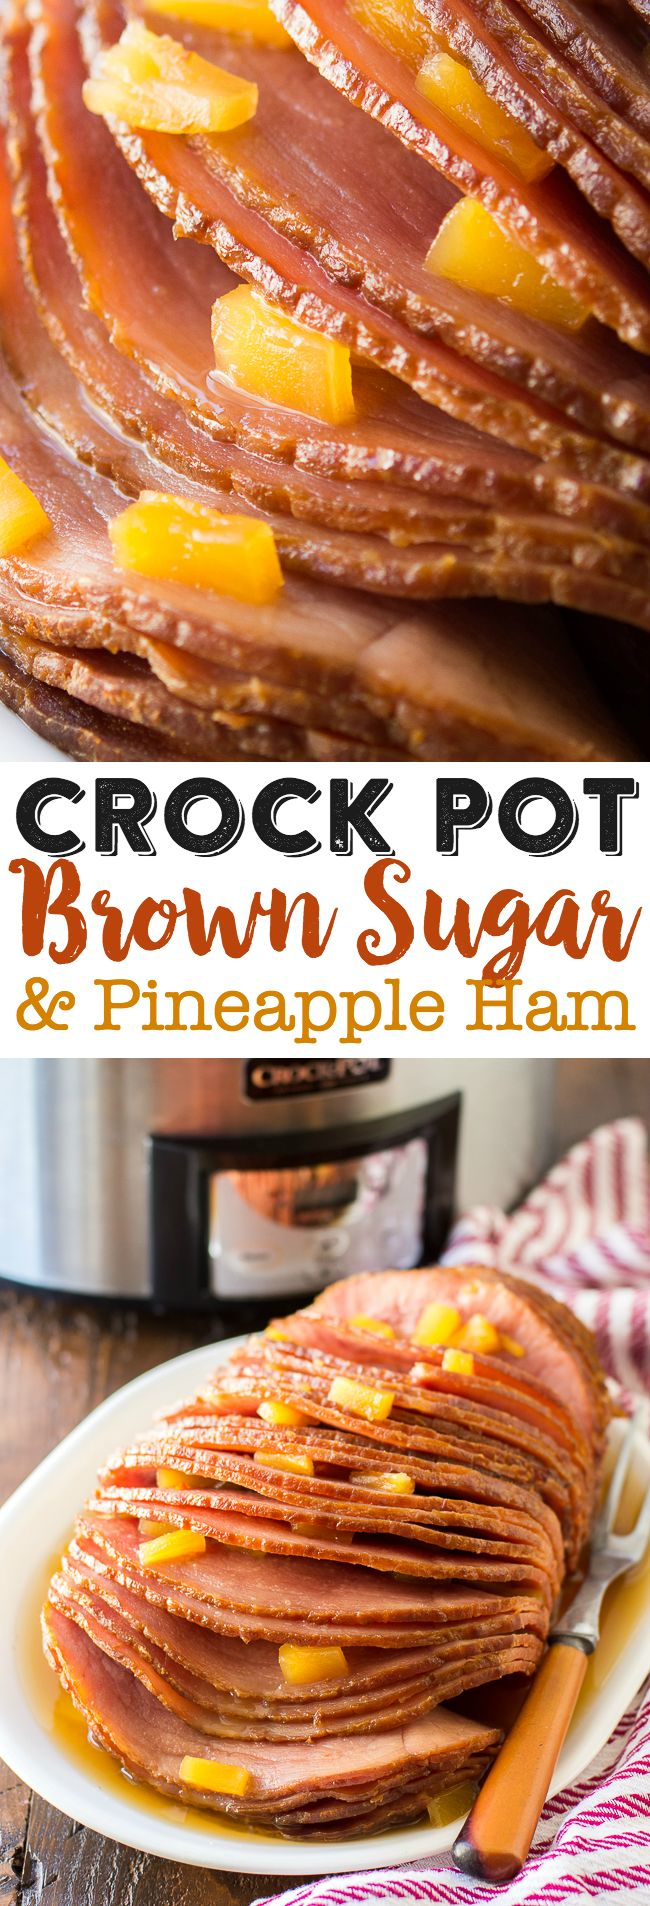 Crock Pot Brown Sugar Pineapple Ham Recipe | Slow…